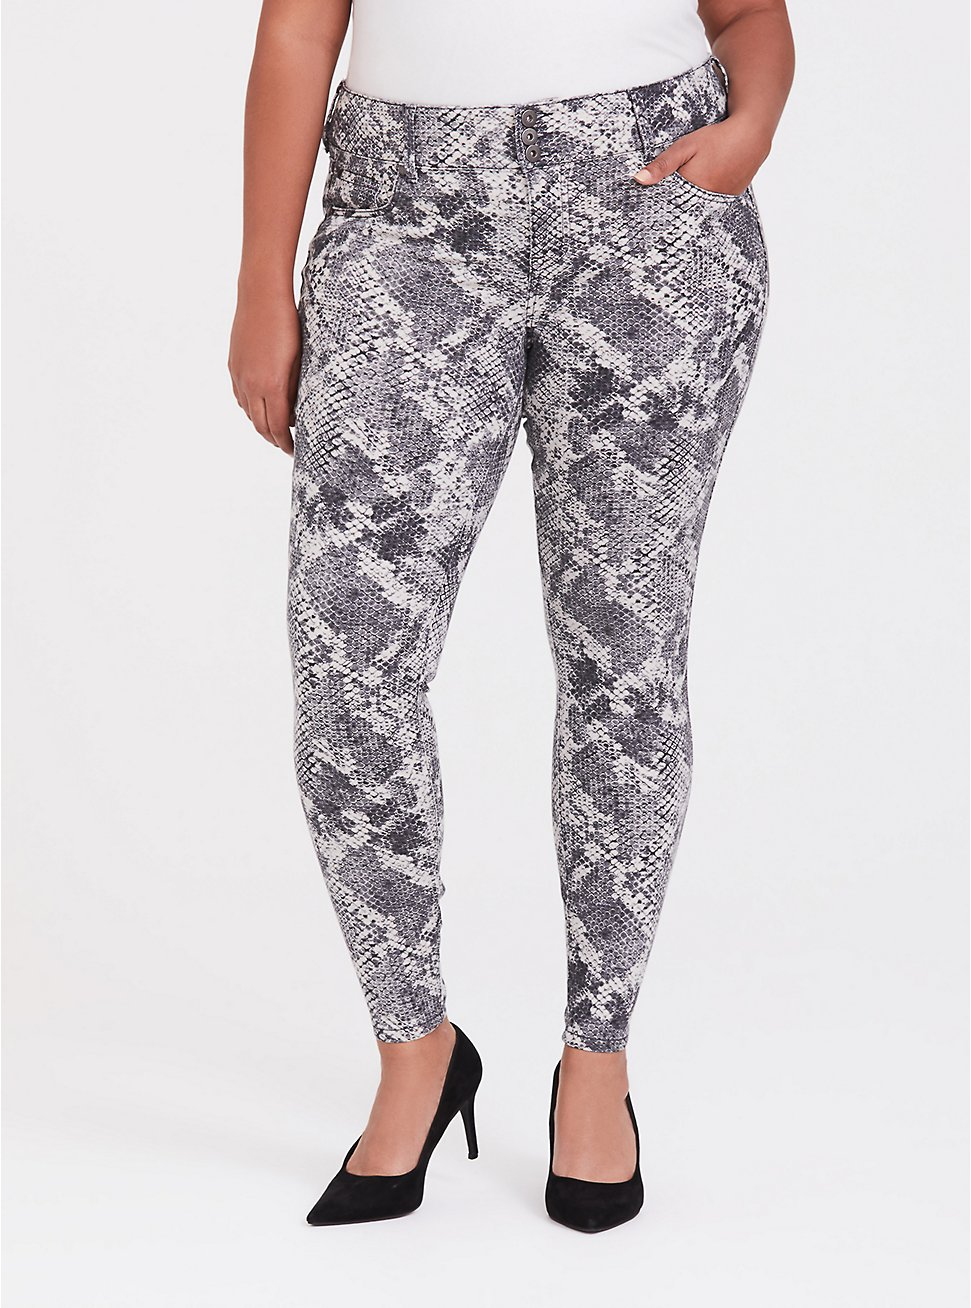 Jegging - Super Stretch Grey Snakeskin Print, SNAKE - BROWN, hi-res